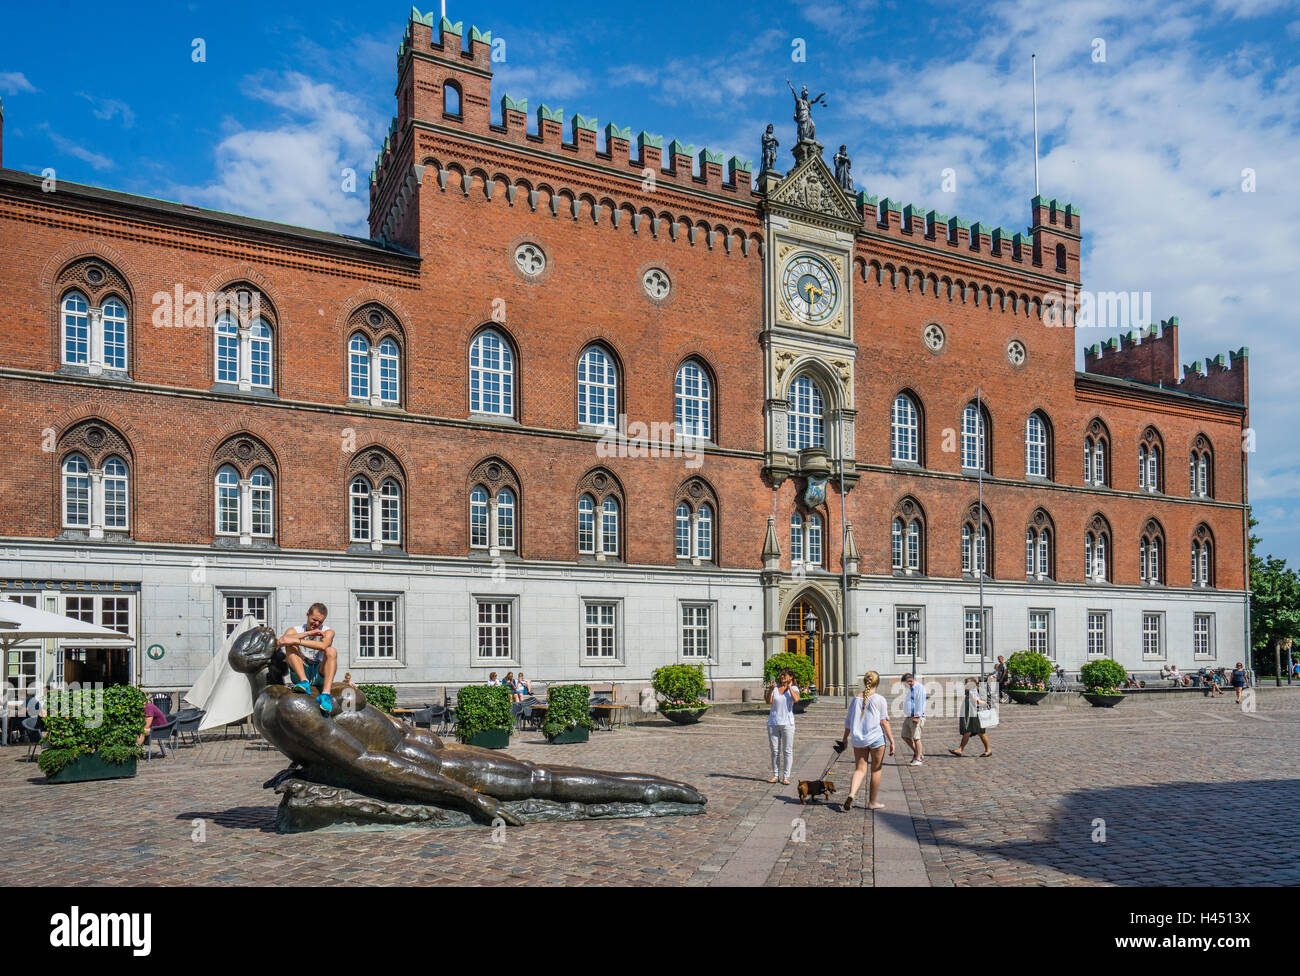 Denmark, Funen, Odense, view of Flakhaven central square with the Italian-Gothic Odense City Hall, bronce sculpture - Stock Image